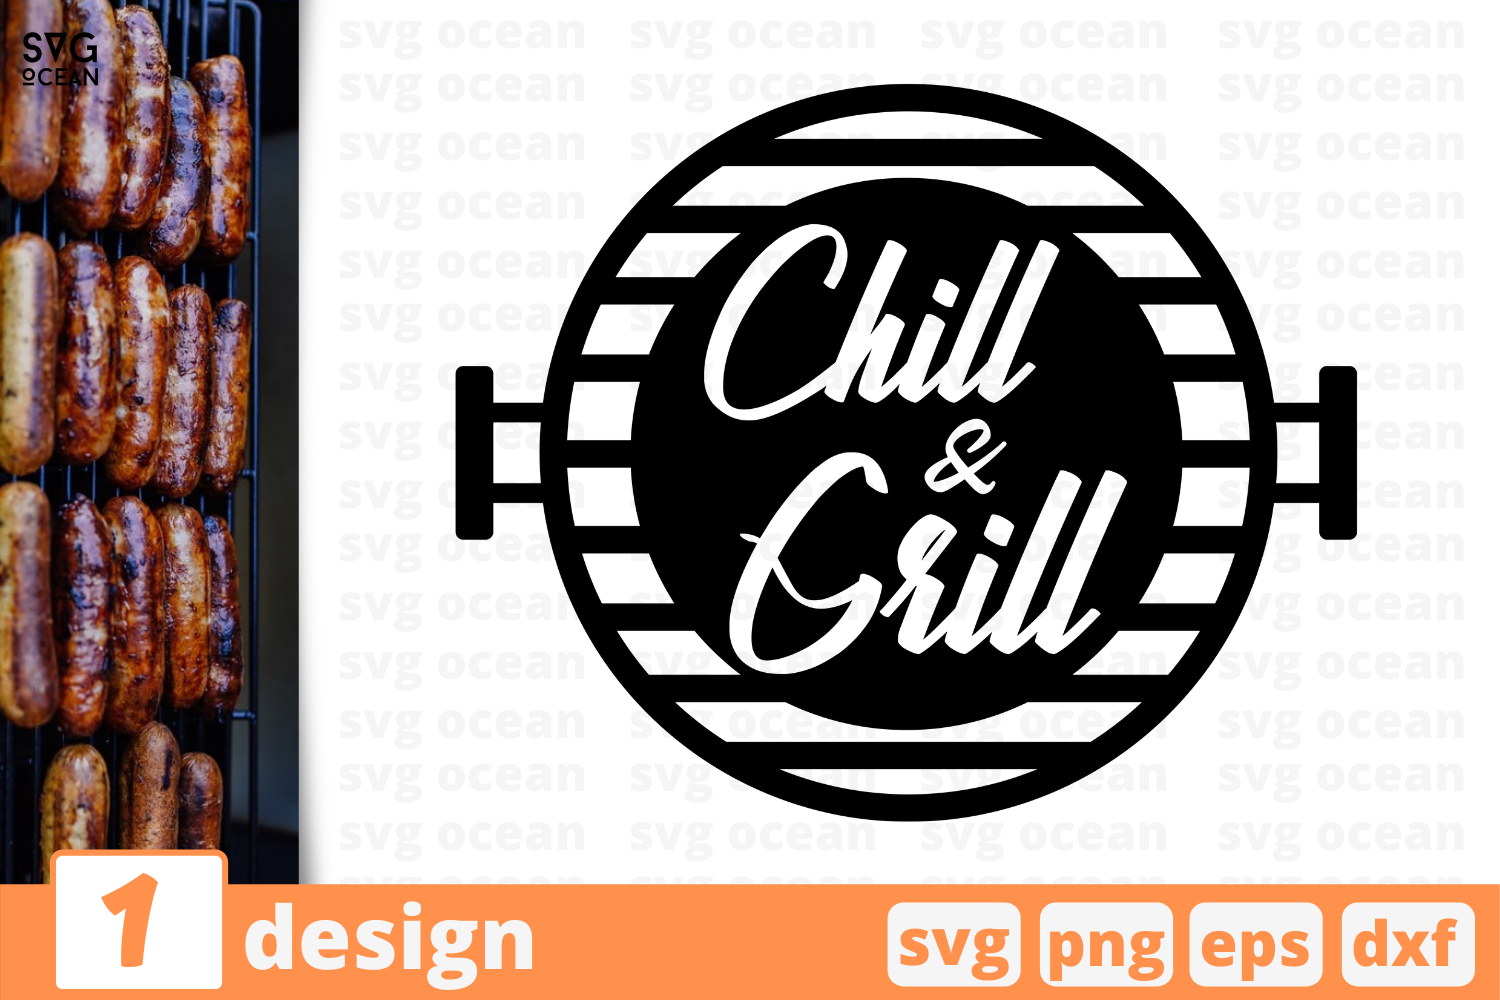 Download Free Chill And Grill Graphic By Svgocean Creative Fabrica for Cricut Explore, Silhouette and other cutting machines.